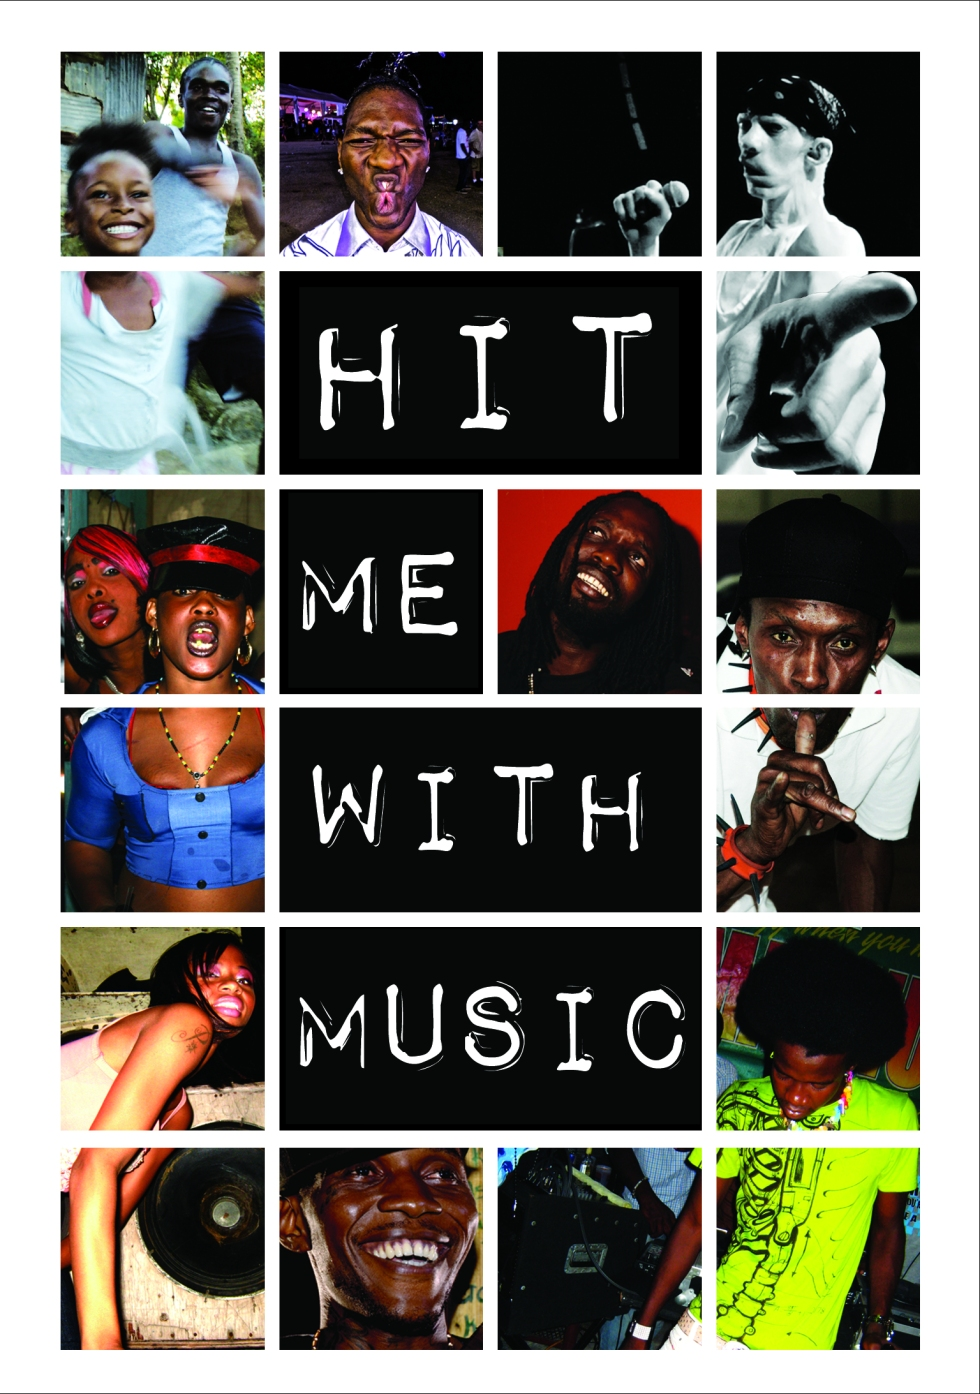 ttff_Hit Me With Music - poster